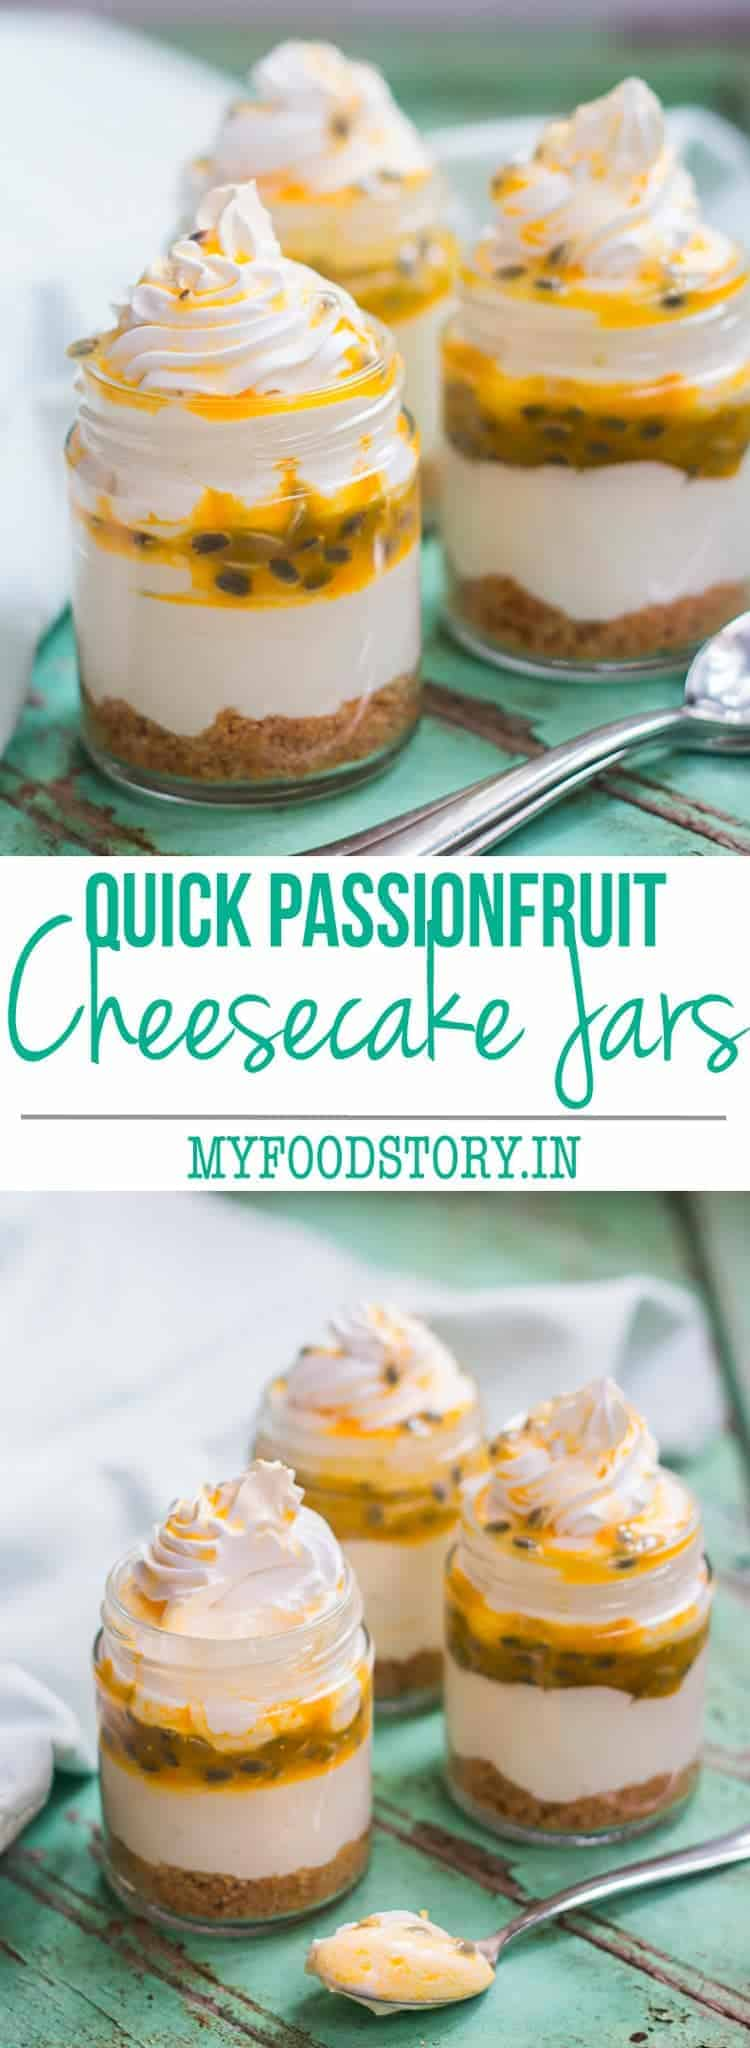 8 ingredient Passion Fruit Cheesecake Jars